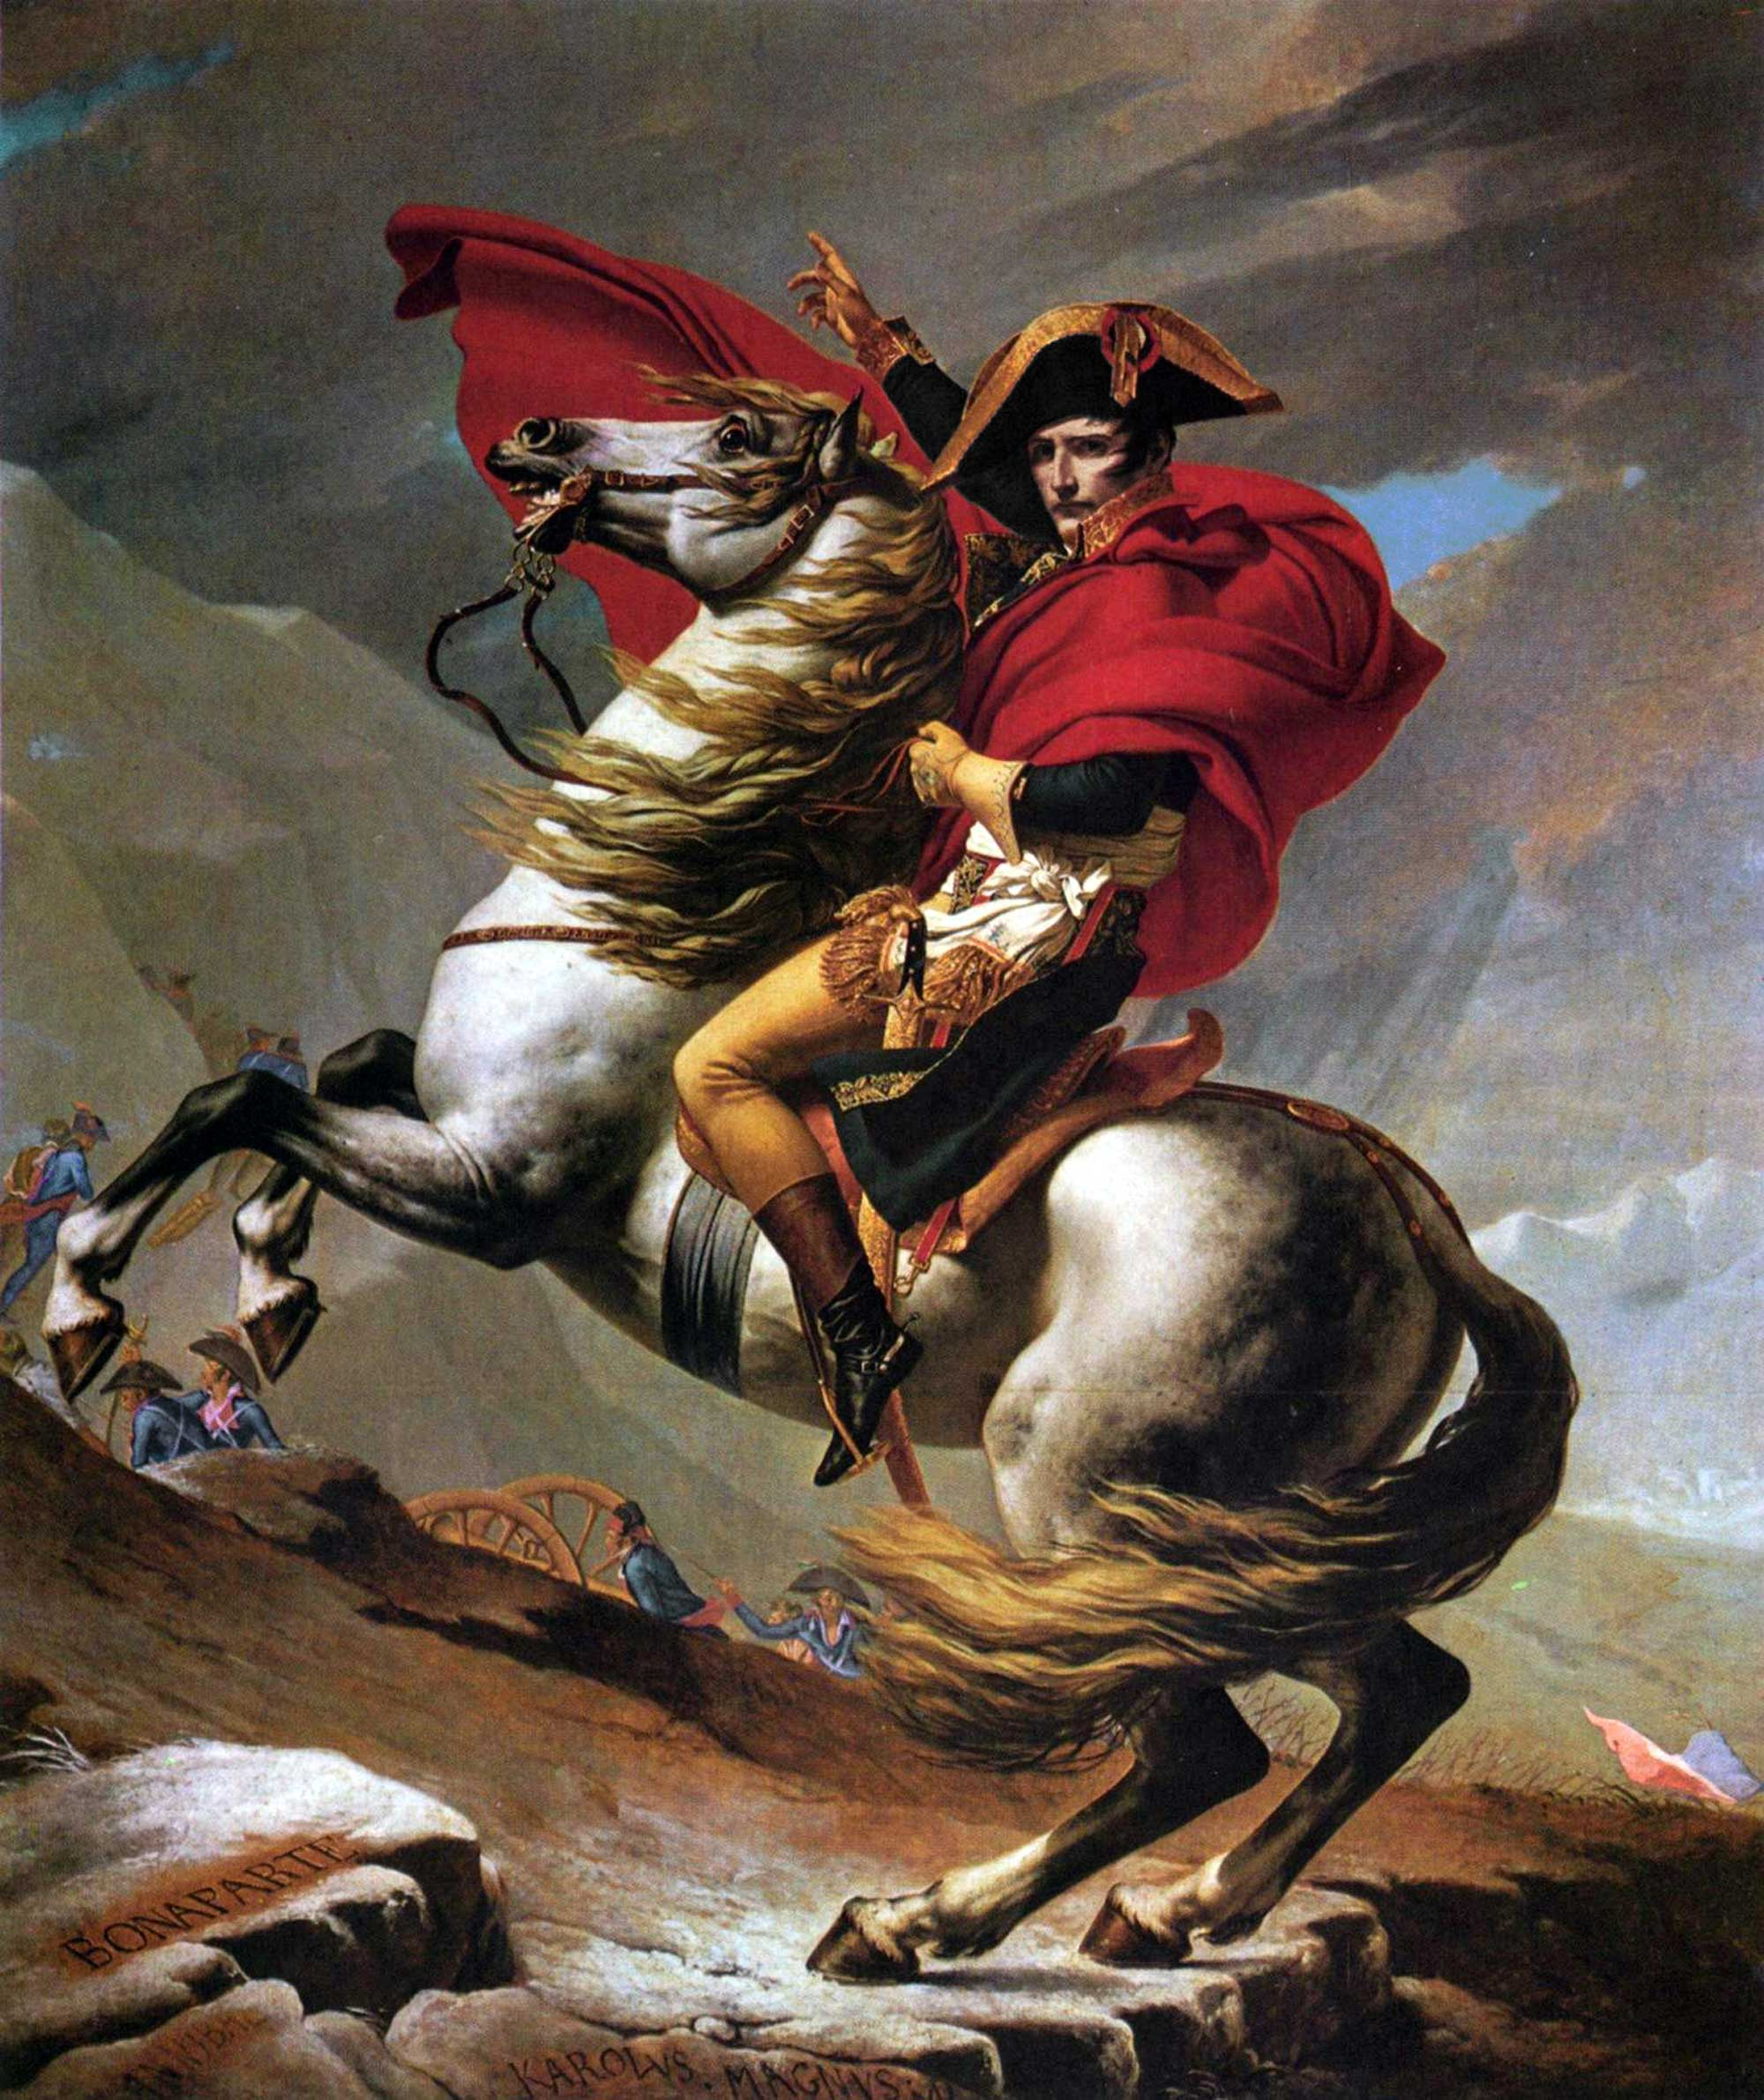 Napoleon Crossing the Alps (Belvedere version)